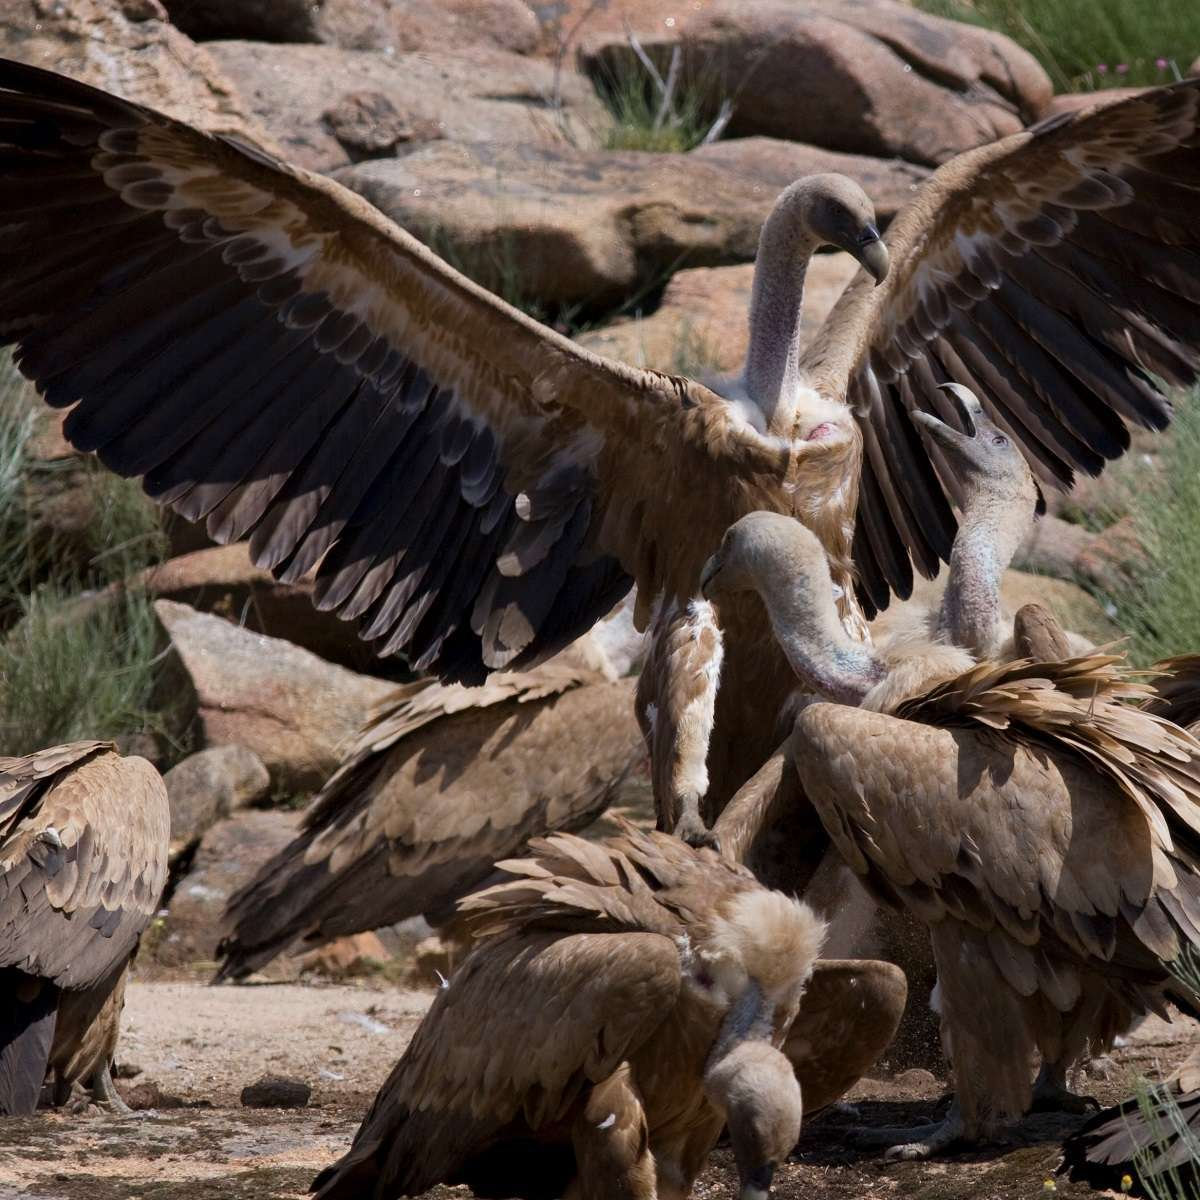 A committee of Griffon vultures feeding